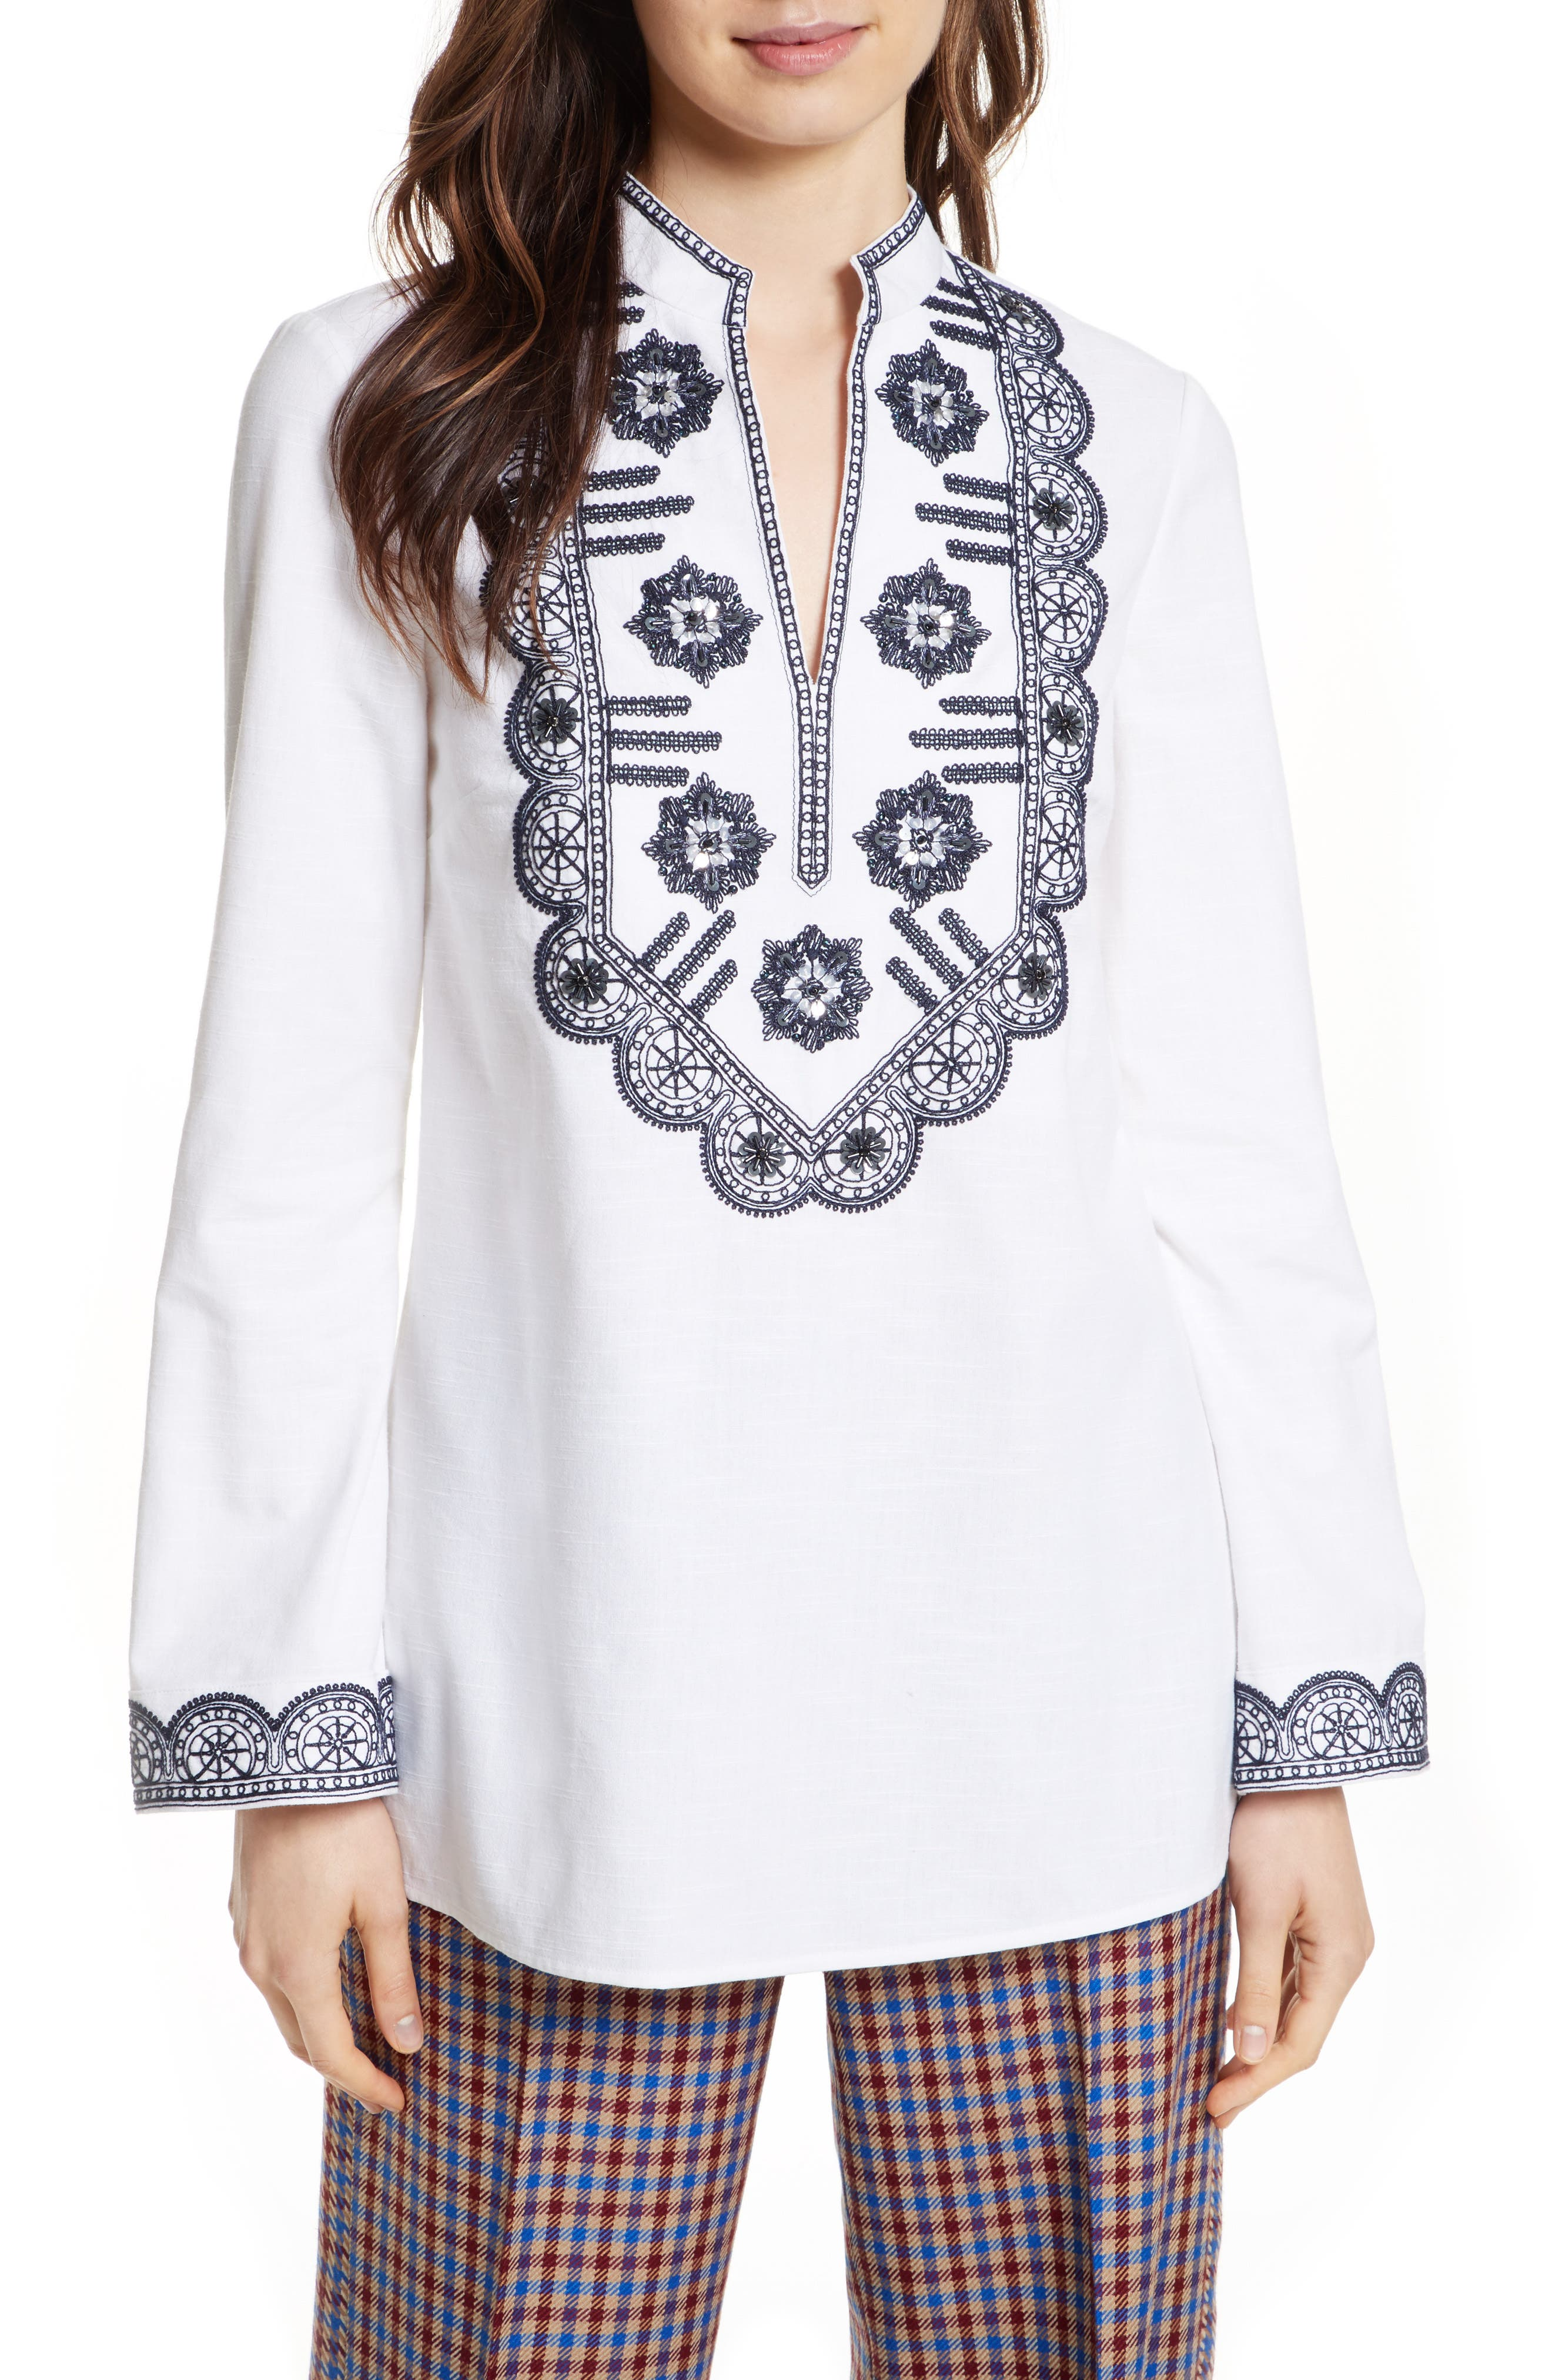 Alternate Image 1 Selected - Tory Burch Embellished Tunic